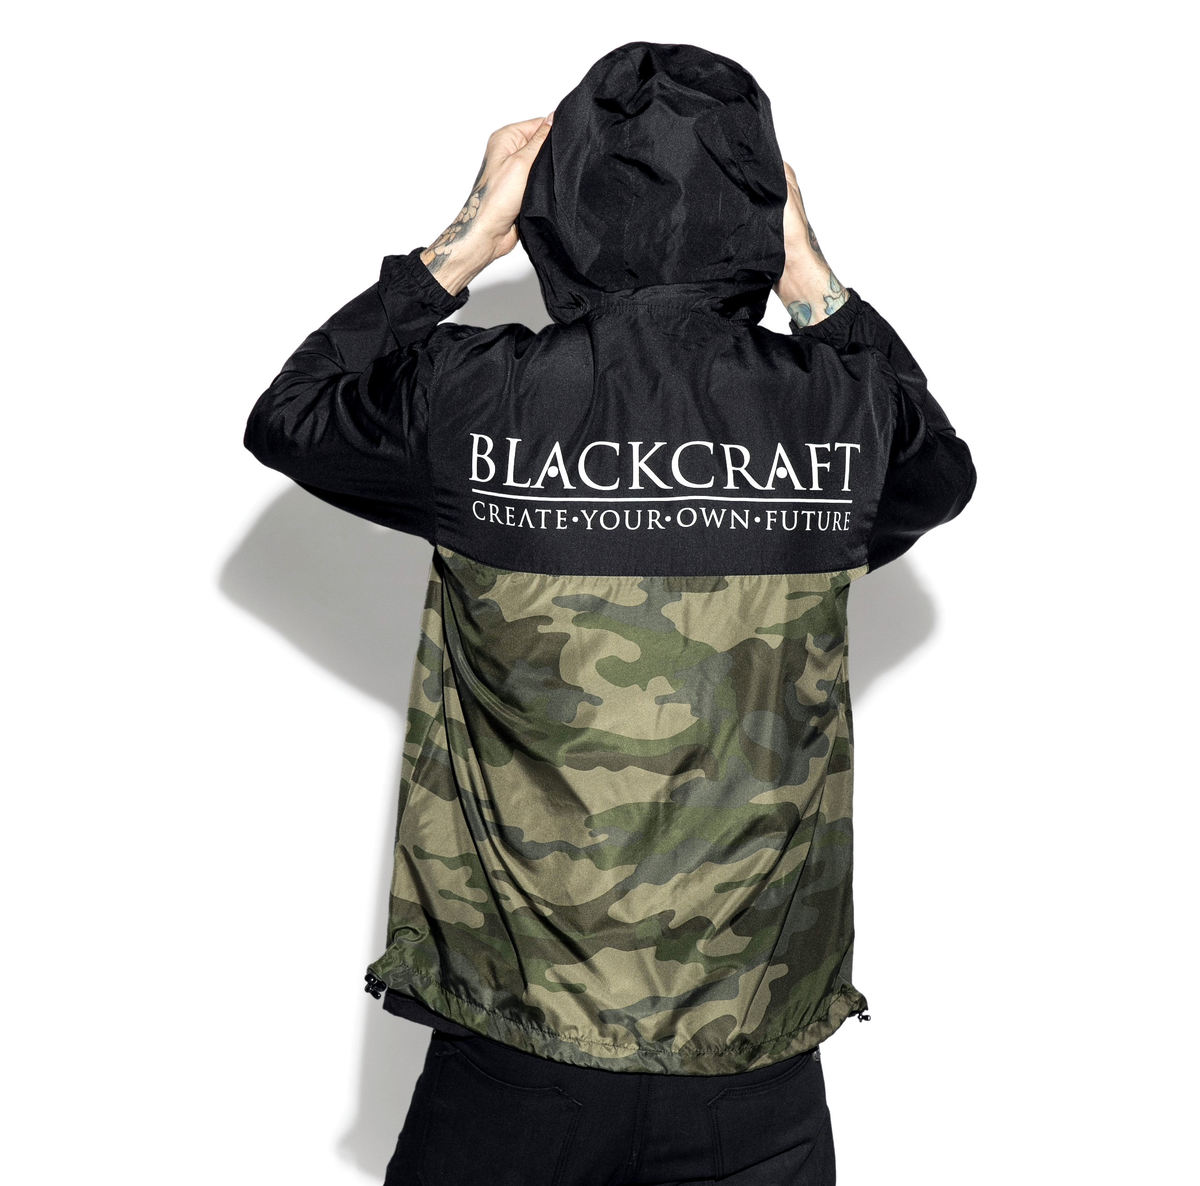 bunda jarněpodzimní BLACK CRAFT Staple Black on Camo S